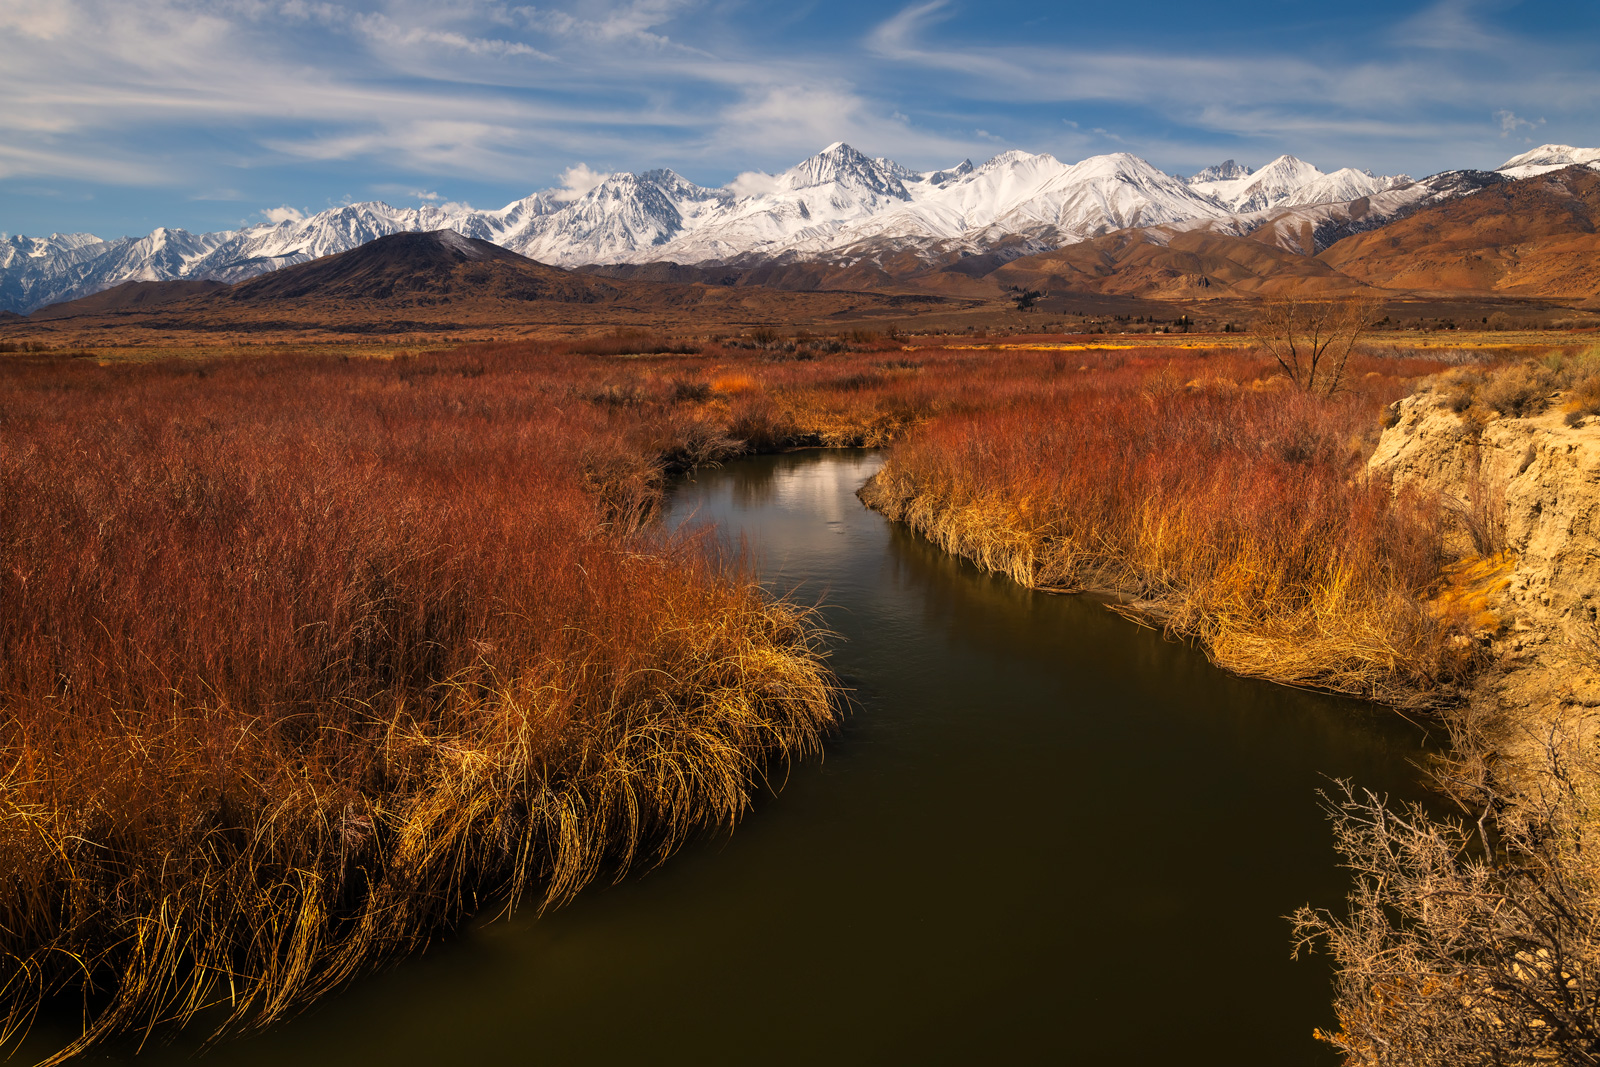 California, Eastern Sierra, Owens River